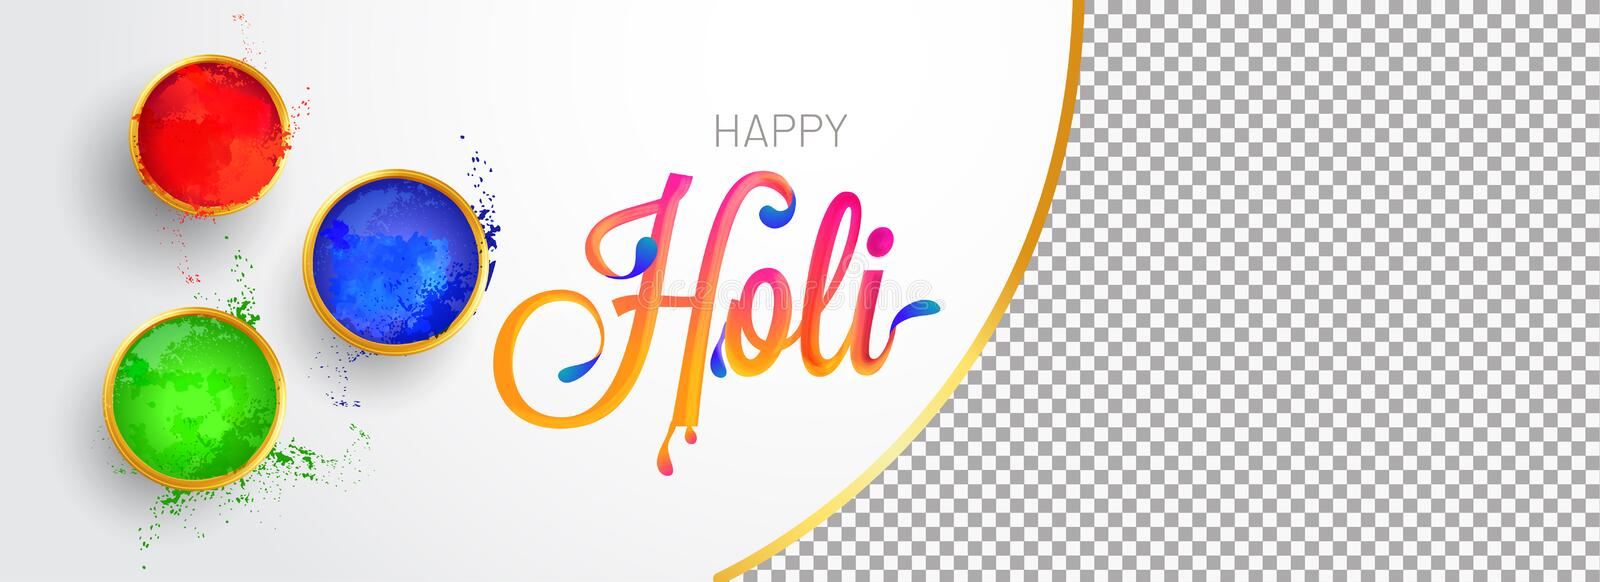 Top view of color bowls with stylish lettering of holi and space for your image. Indian festival of colors celebration banner. Design stock illustration